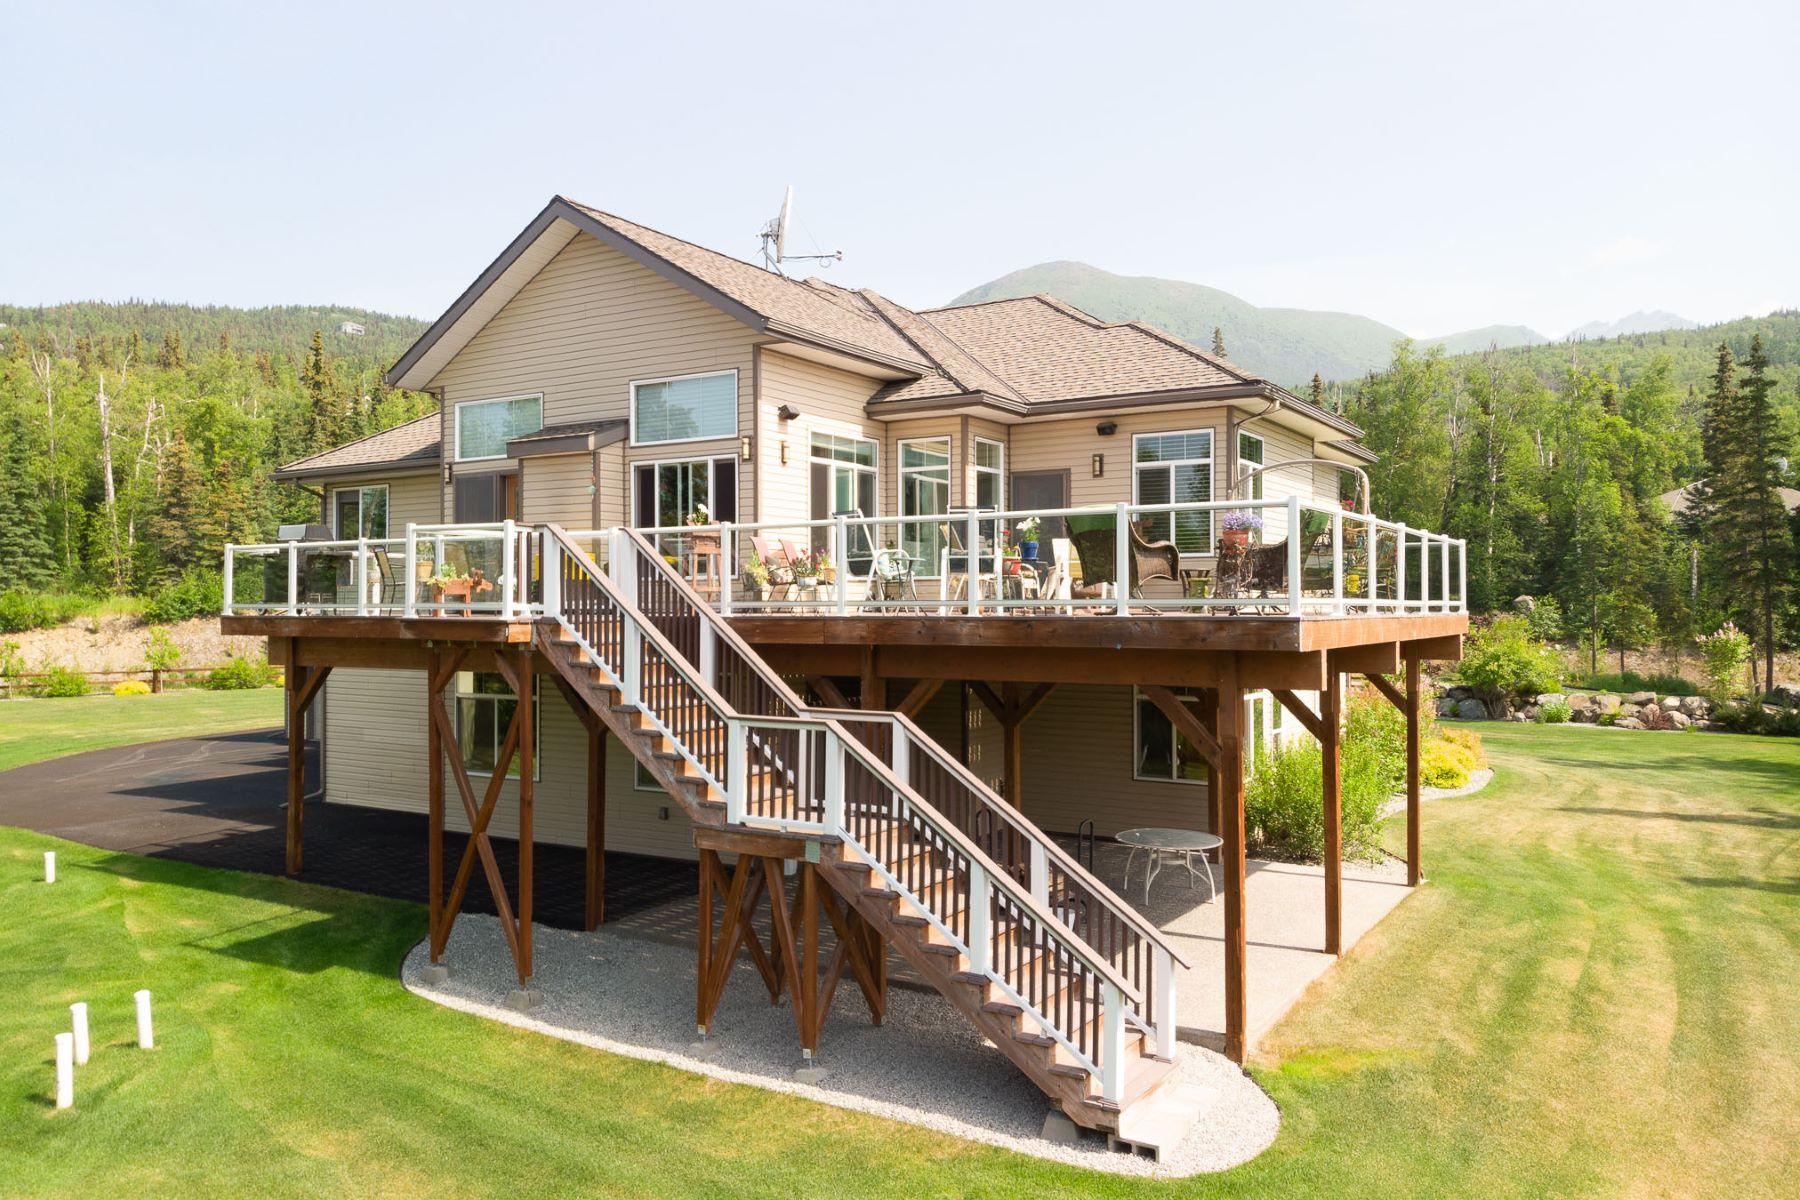 Additional photo for property listing at 11404 Jessie Mae Circle Eagle River, Alaska 99577 United States